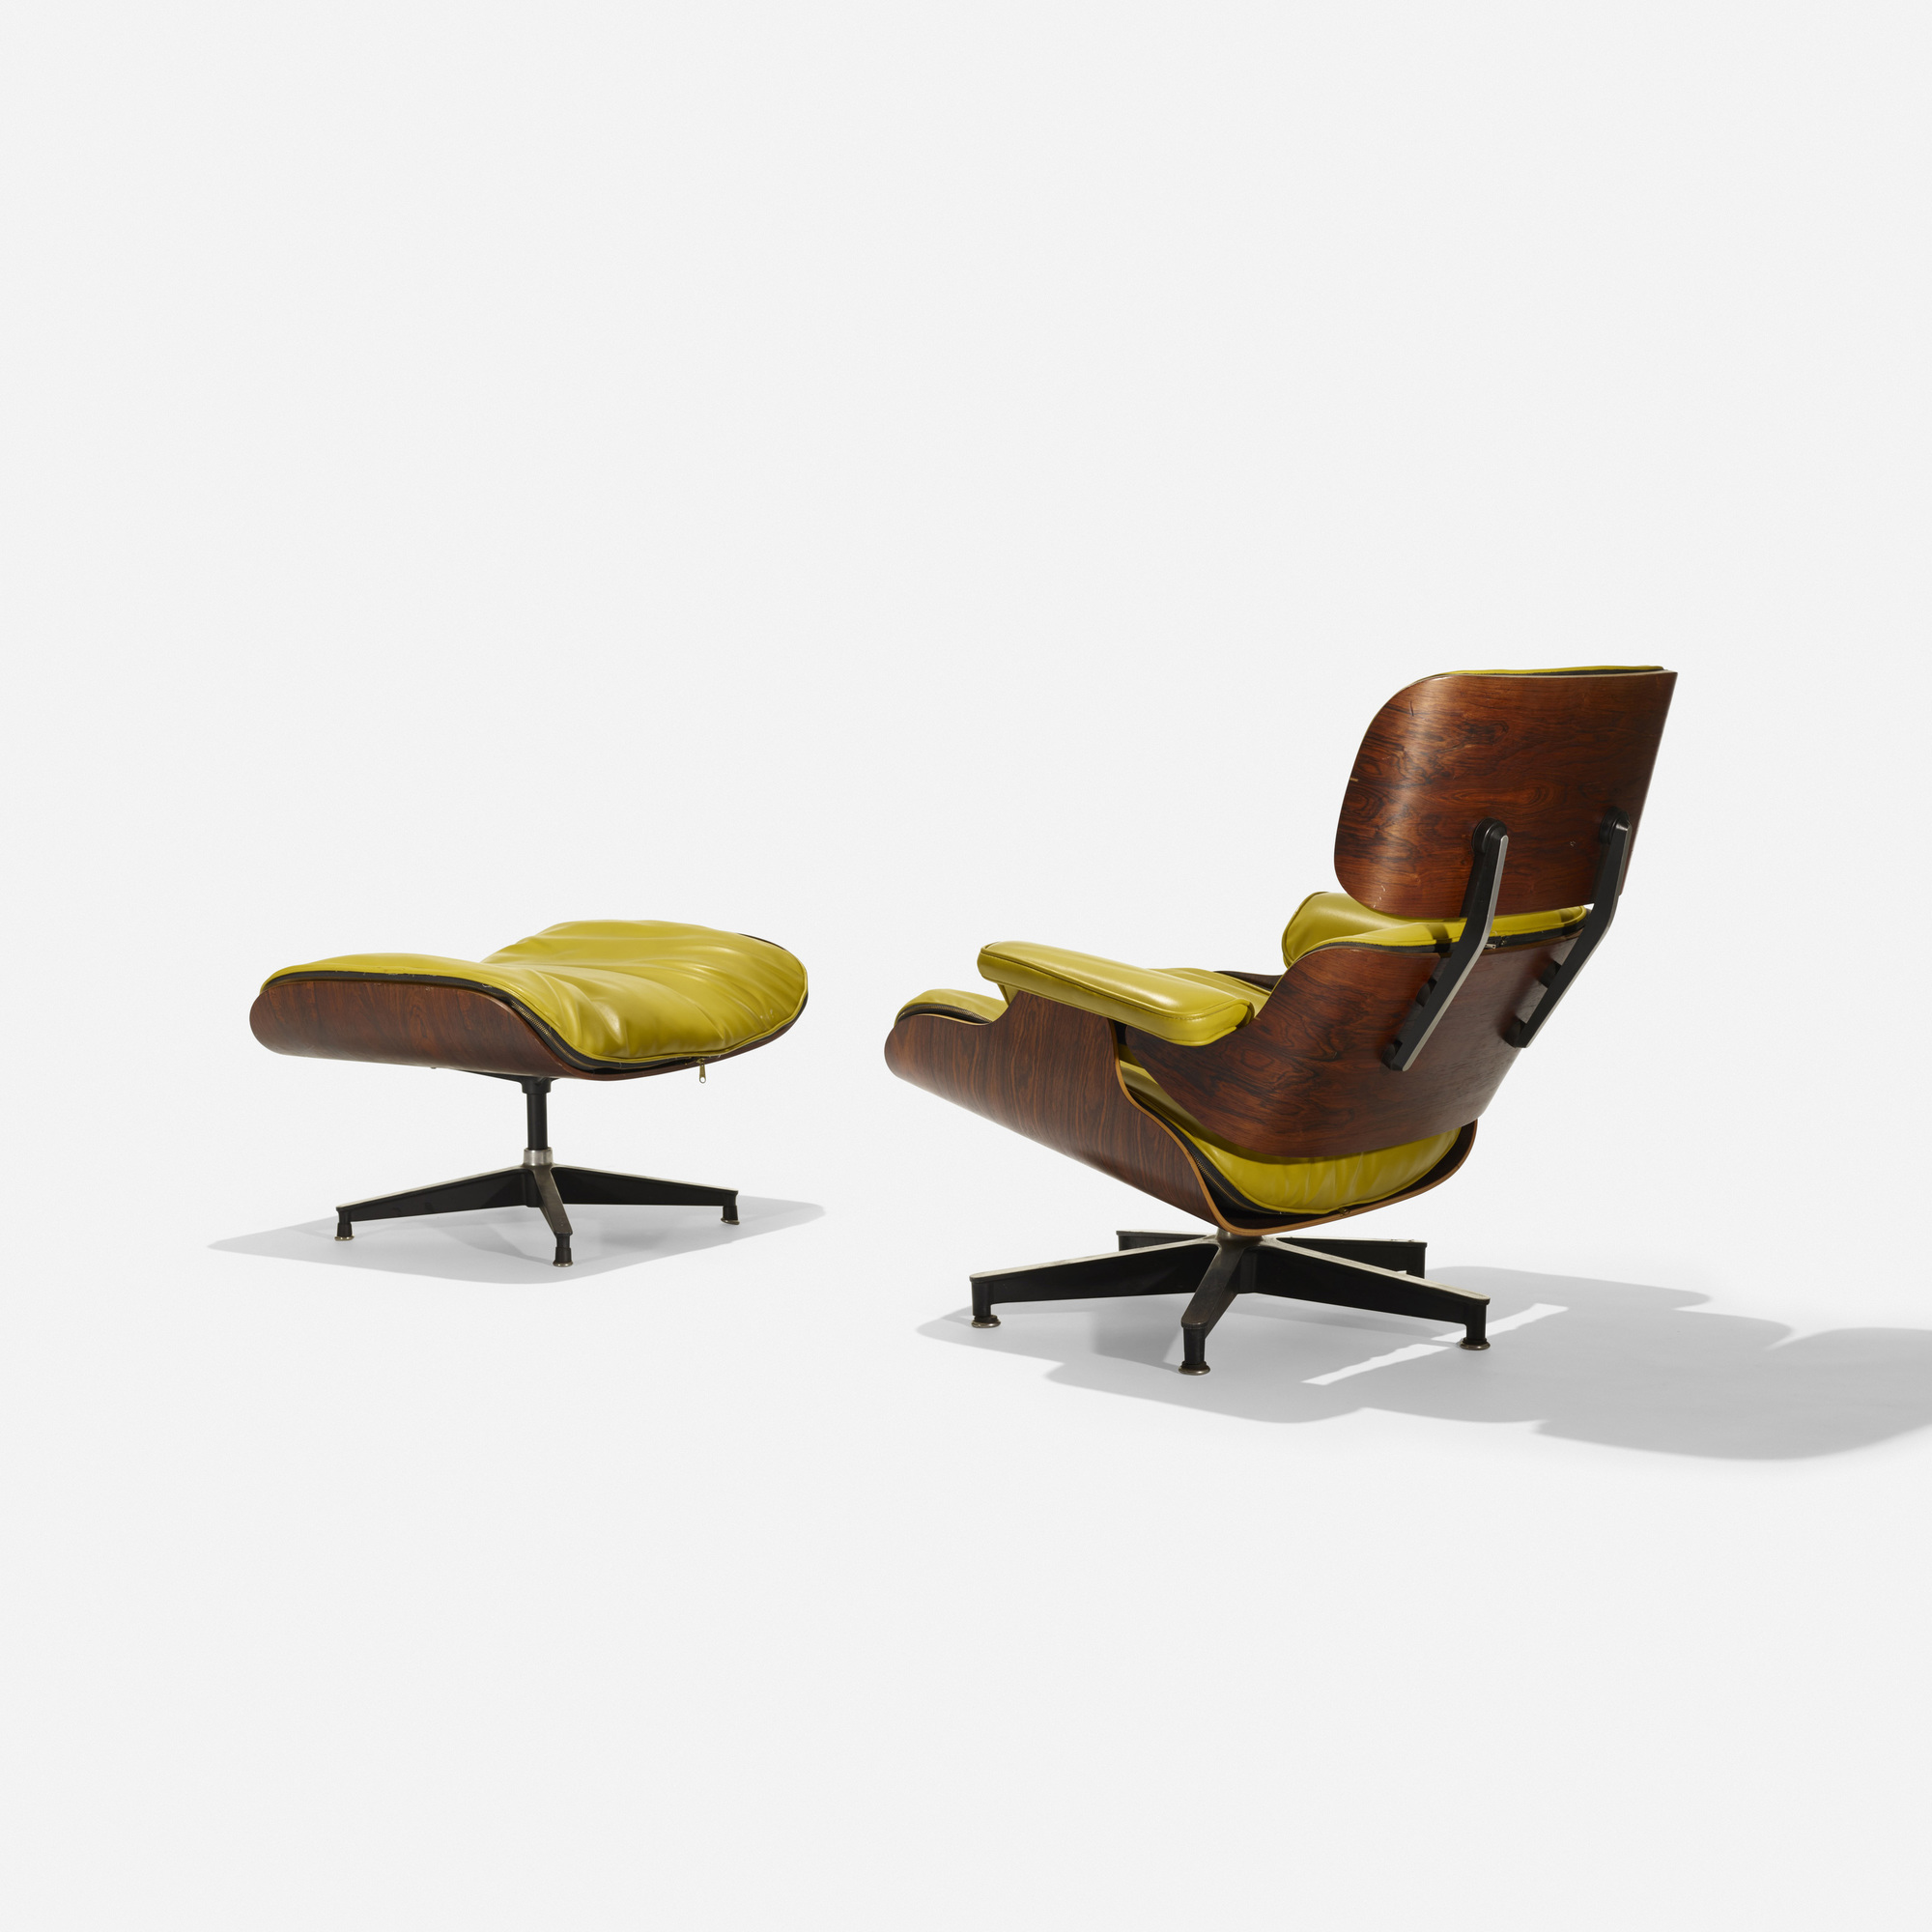 122: Charles and Ray Eames / special-order 670 lounge and 671 ottoman (2 of 3)